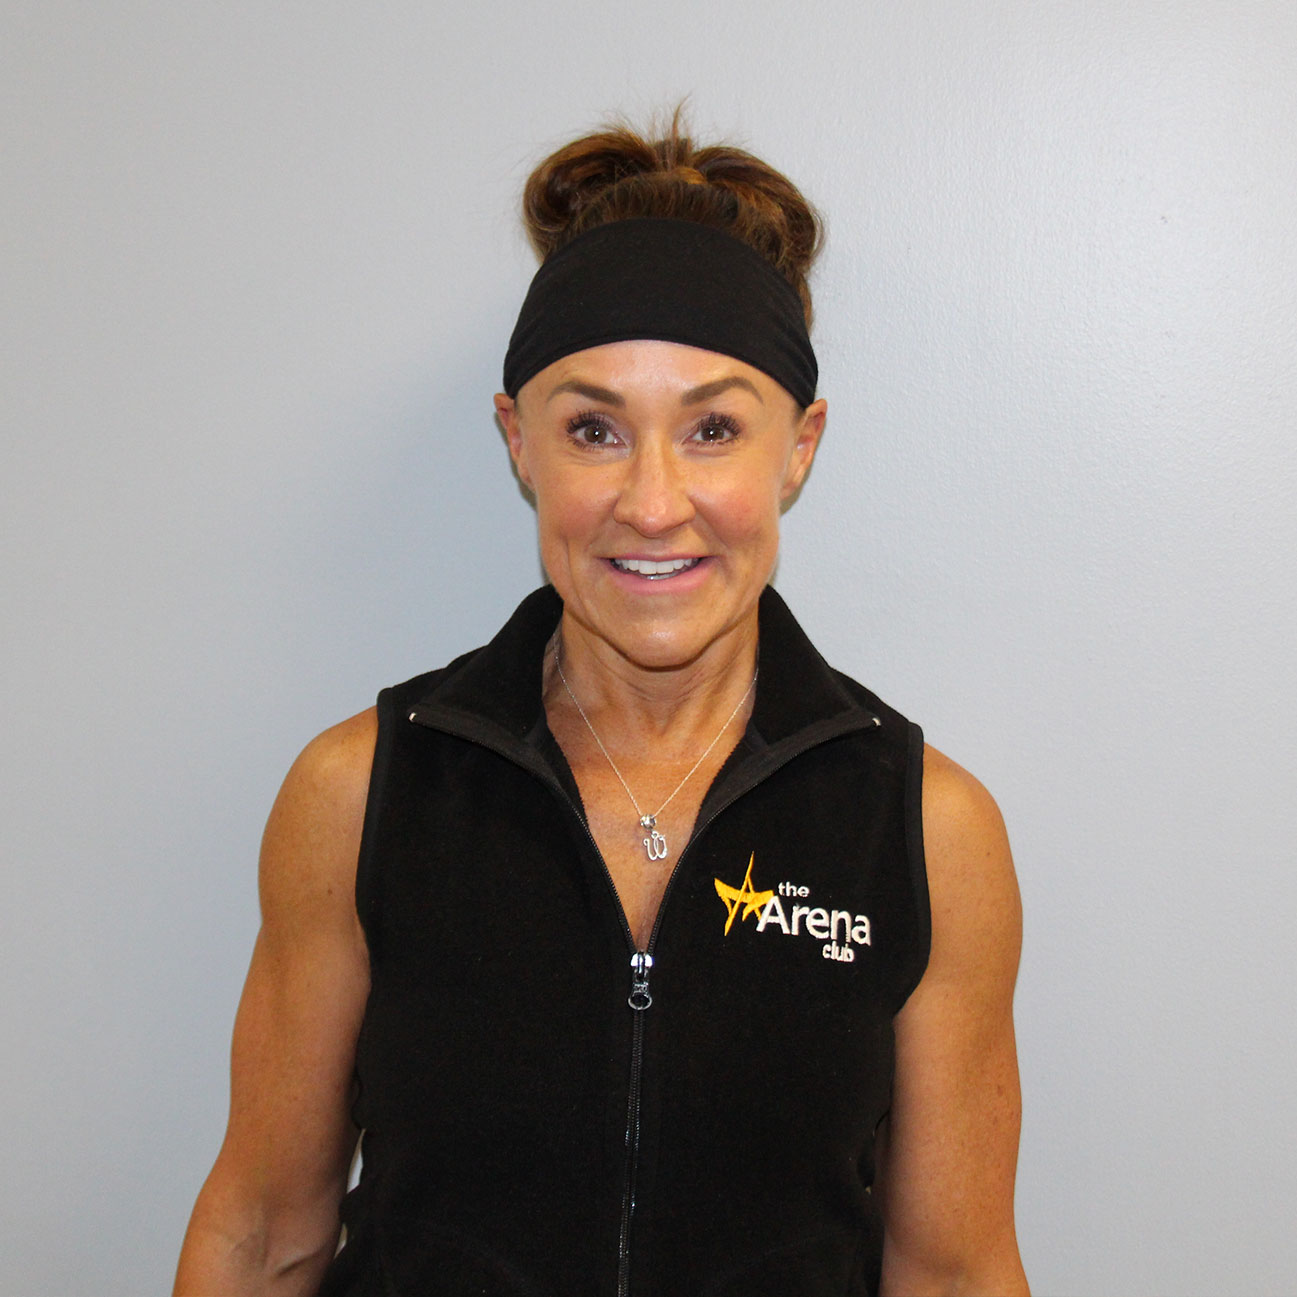 Wendy O'Bryant - Certified Personal Trainer & Group Fitness Instructor